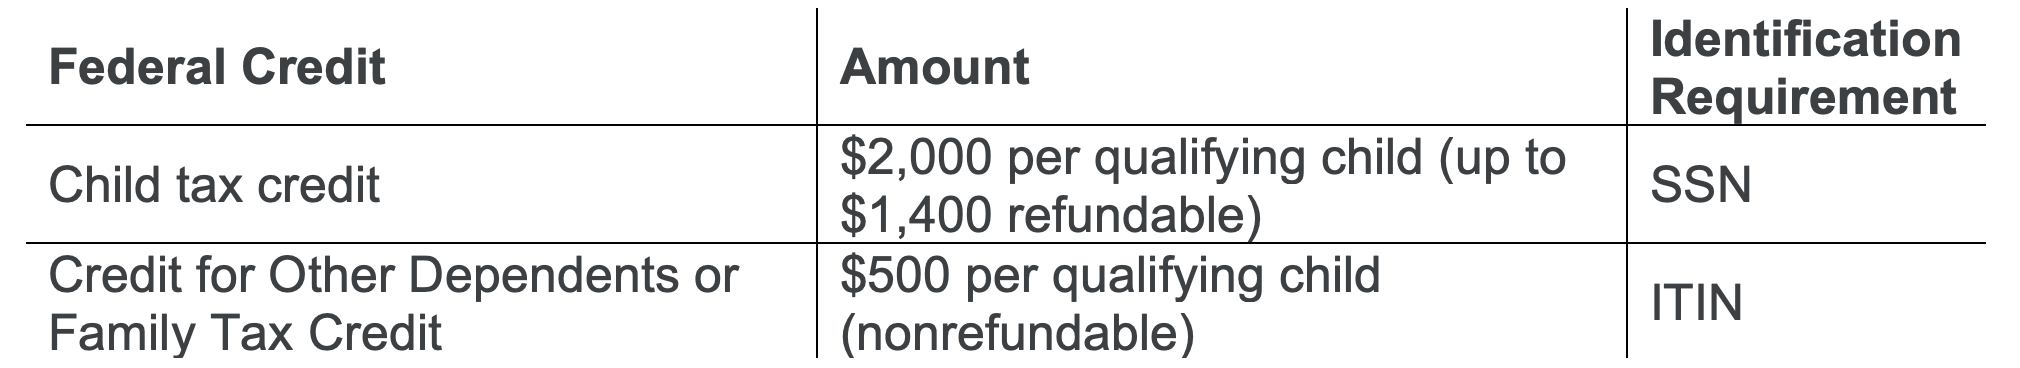 table with federal tax credit information